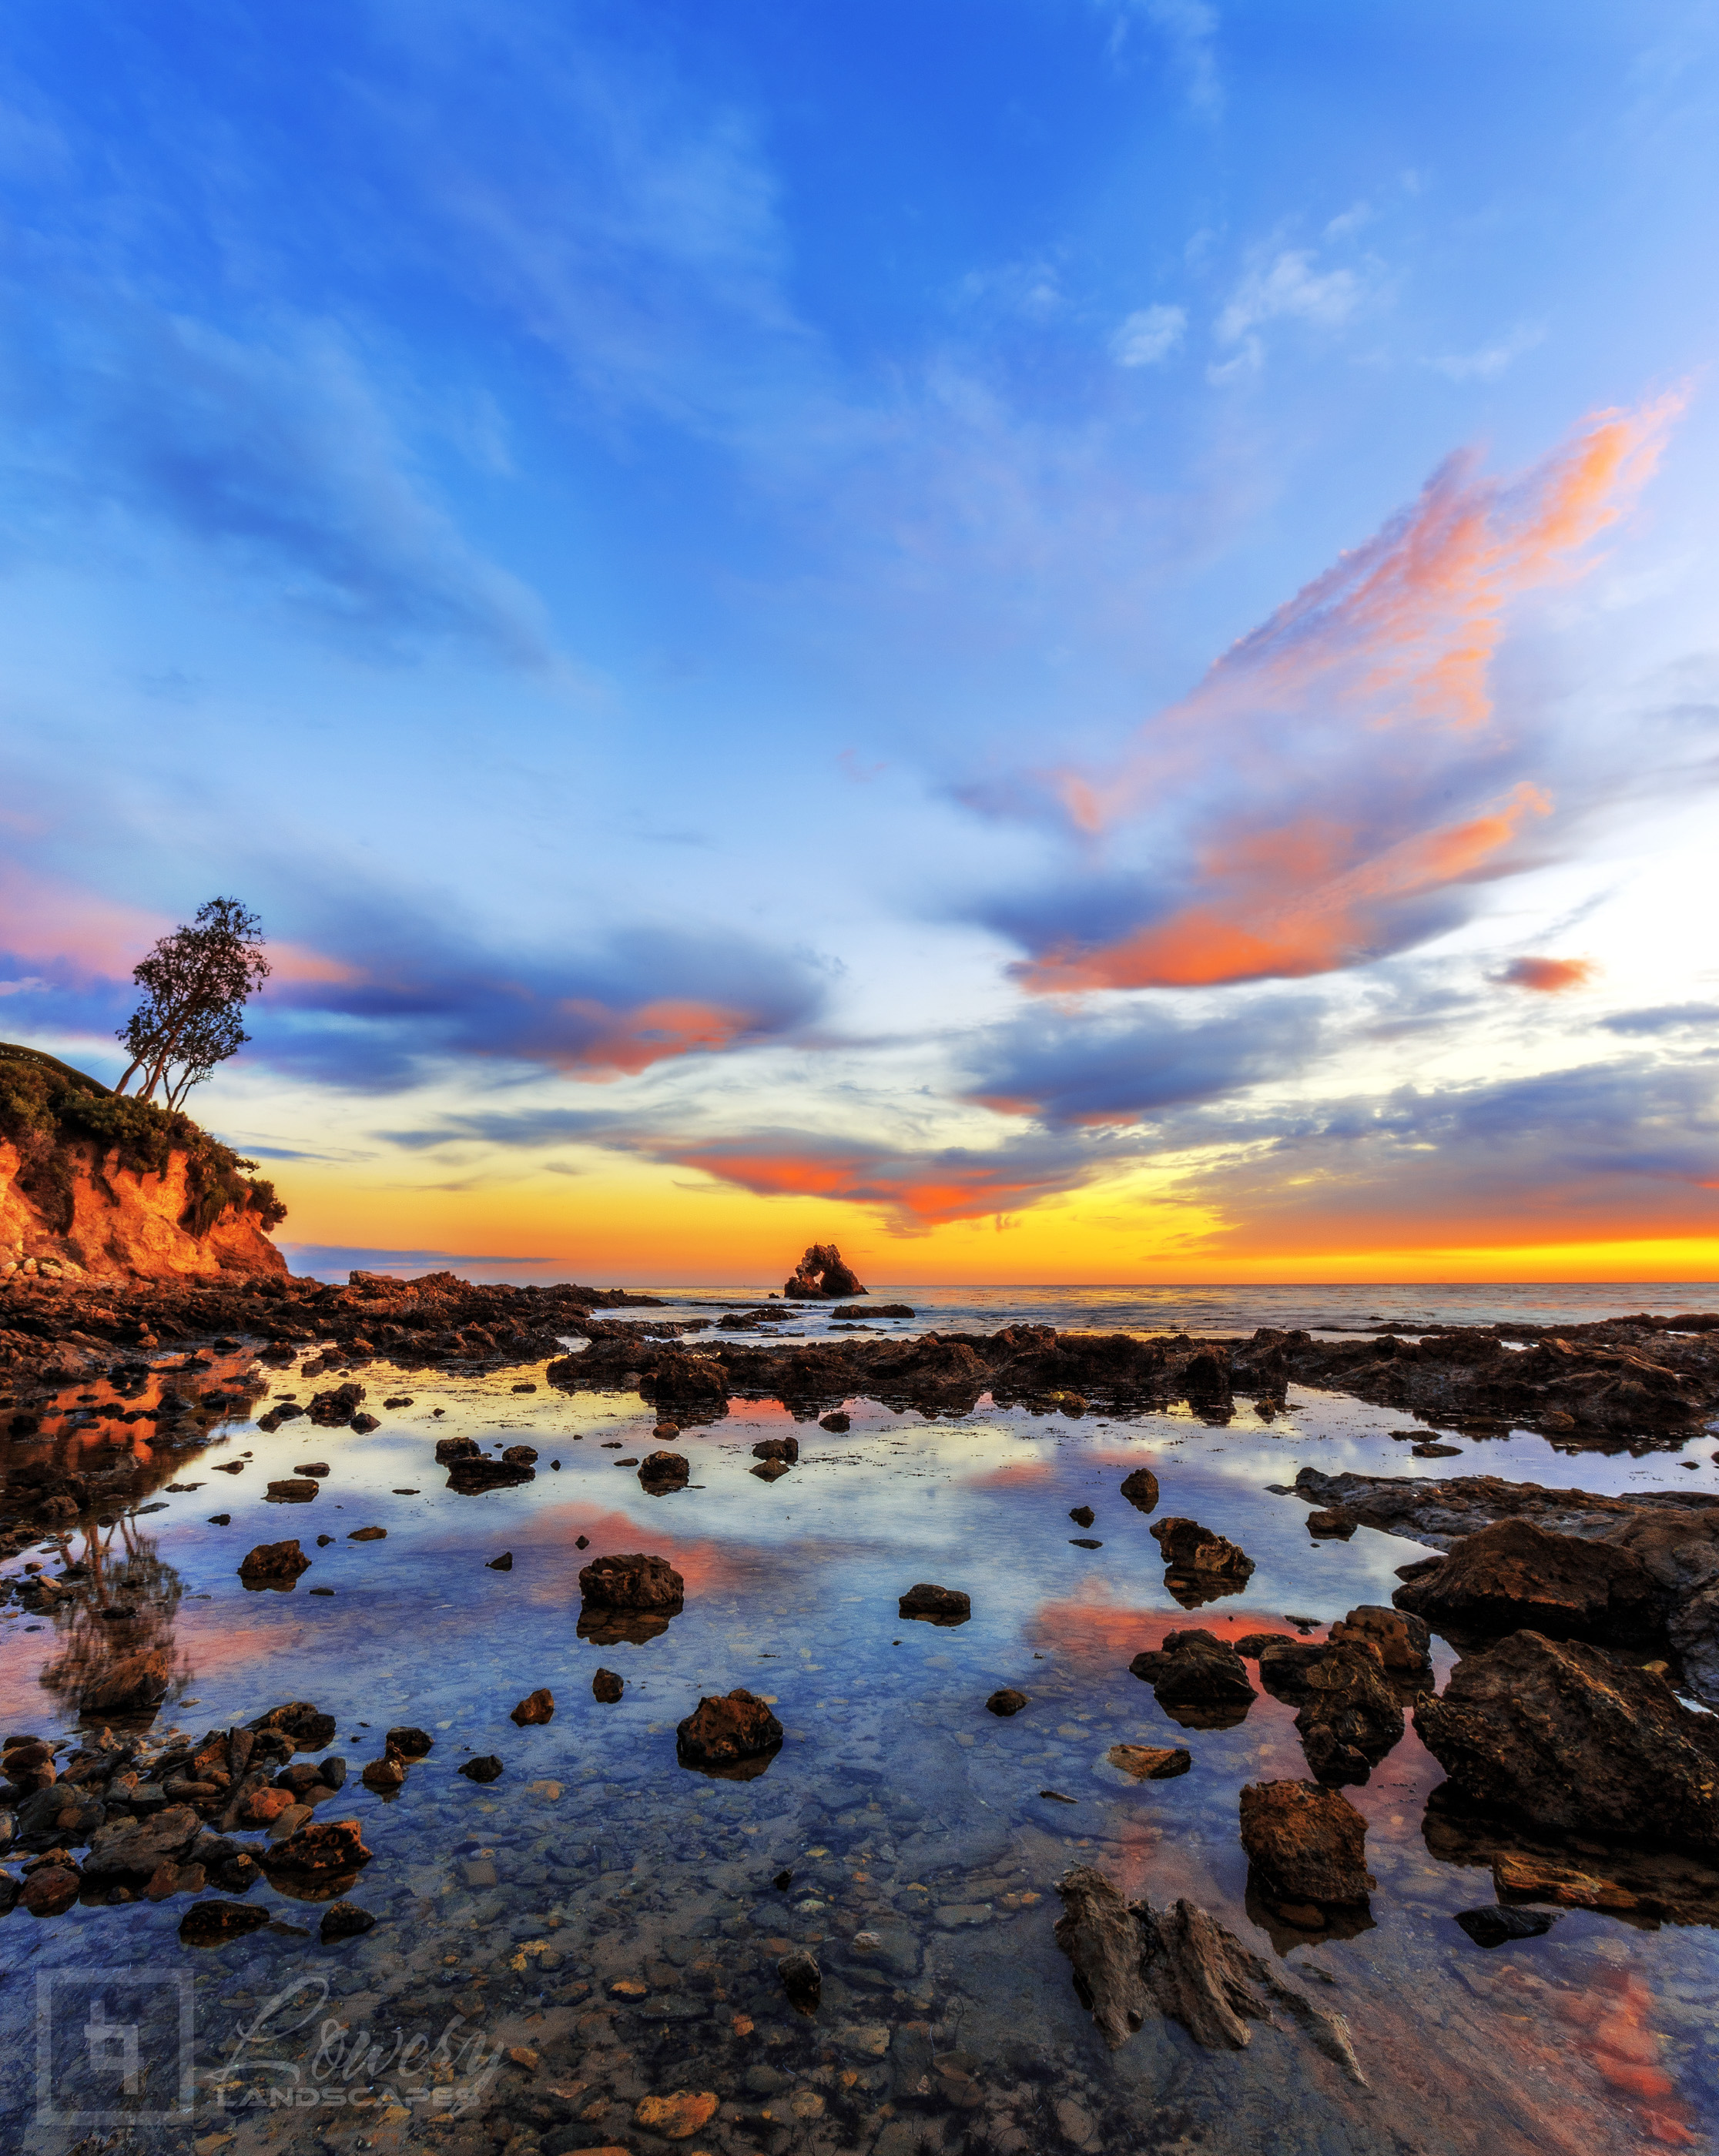 The colors clouds lit by the setting sun are reflected in these tranquil tidal pools along the Southern California coast.